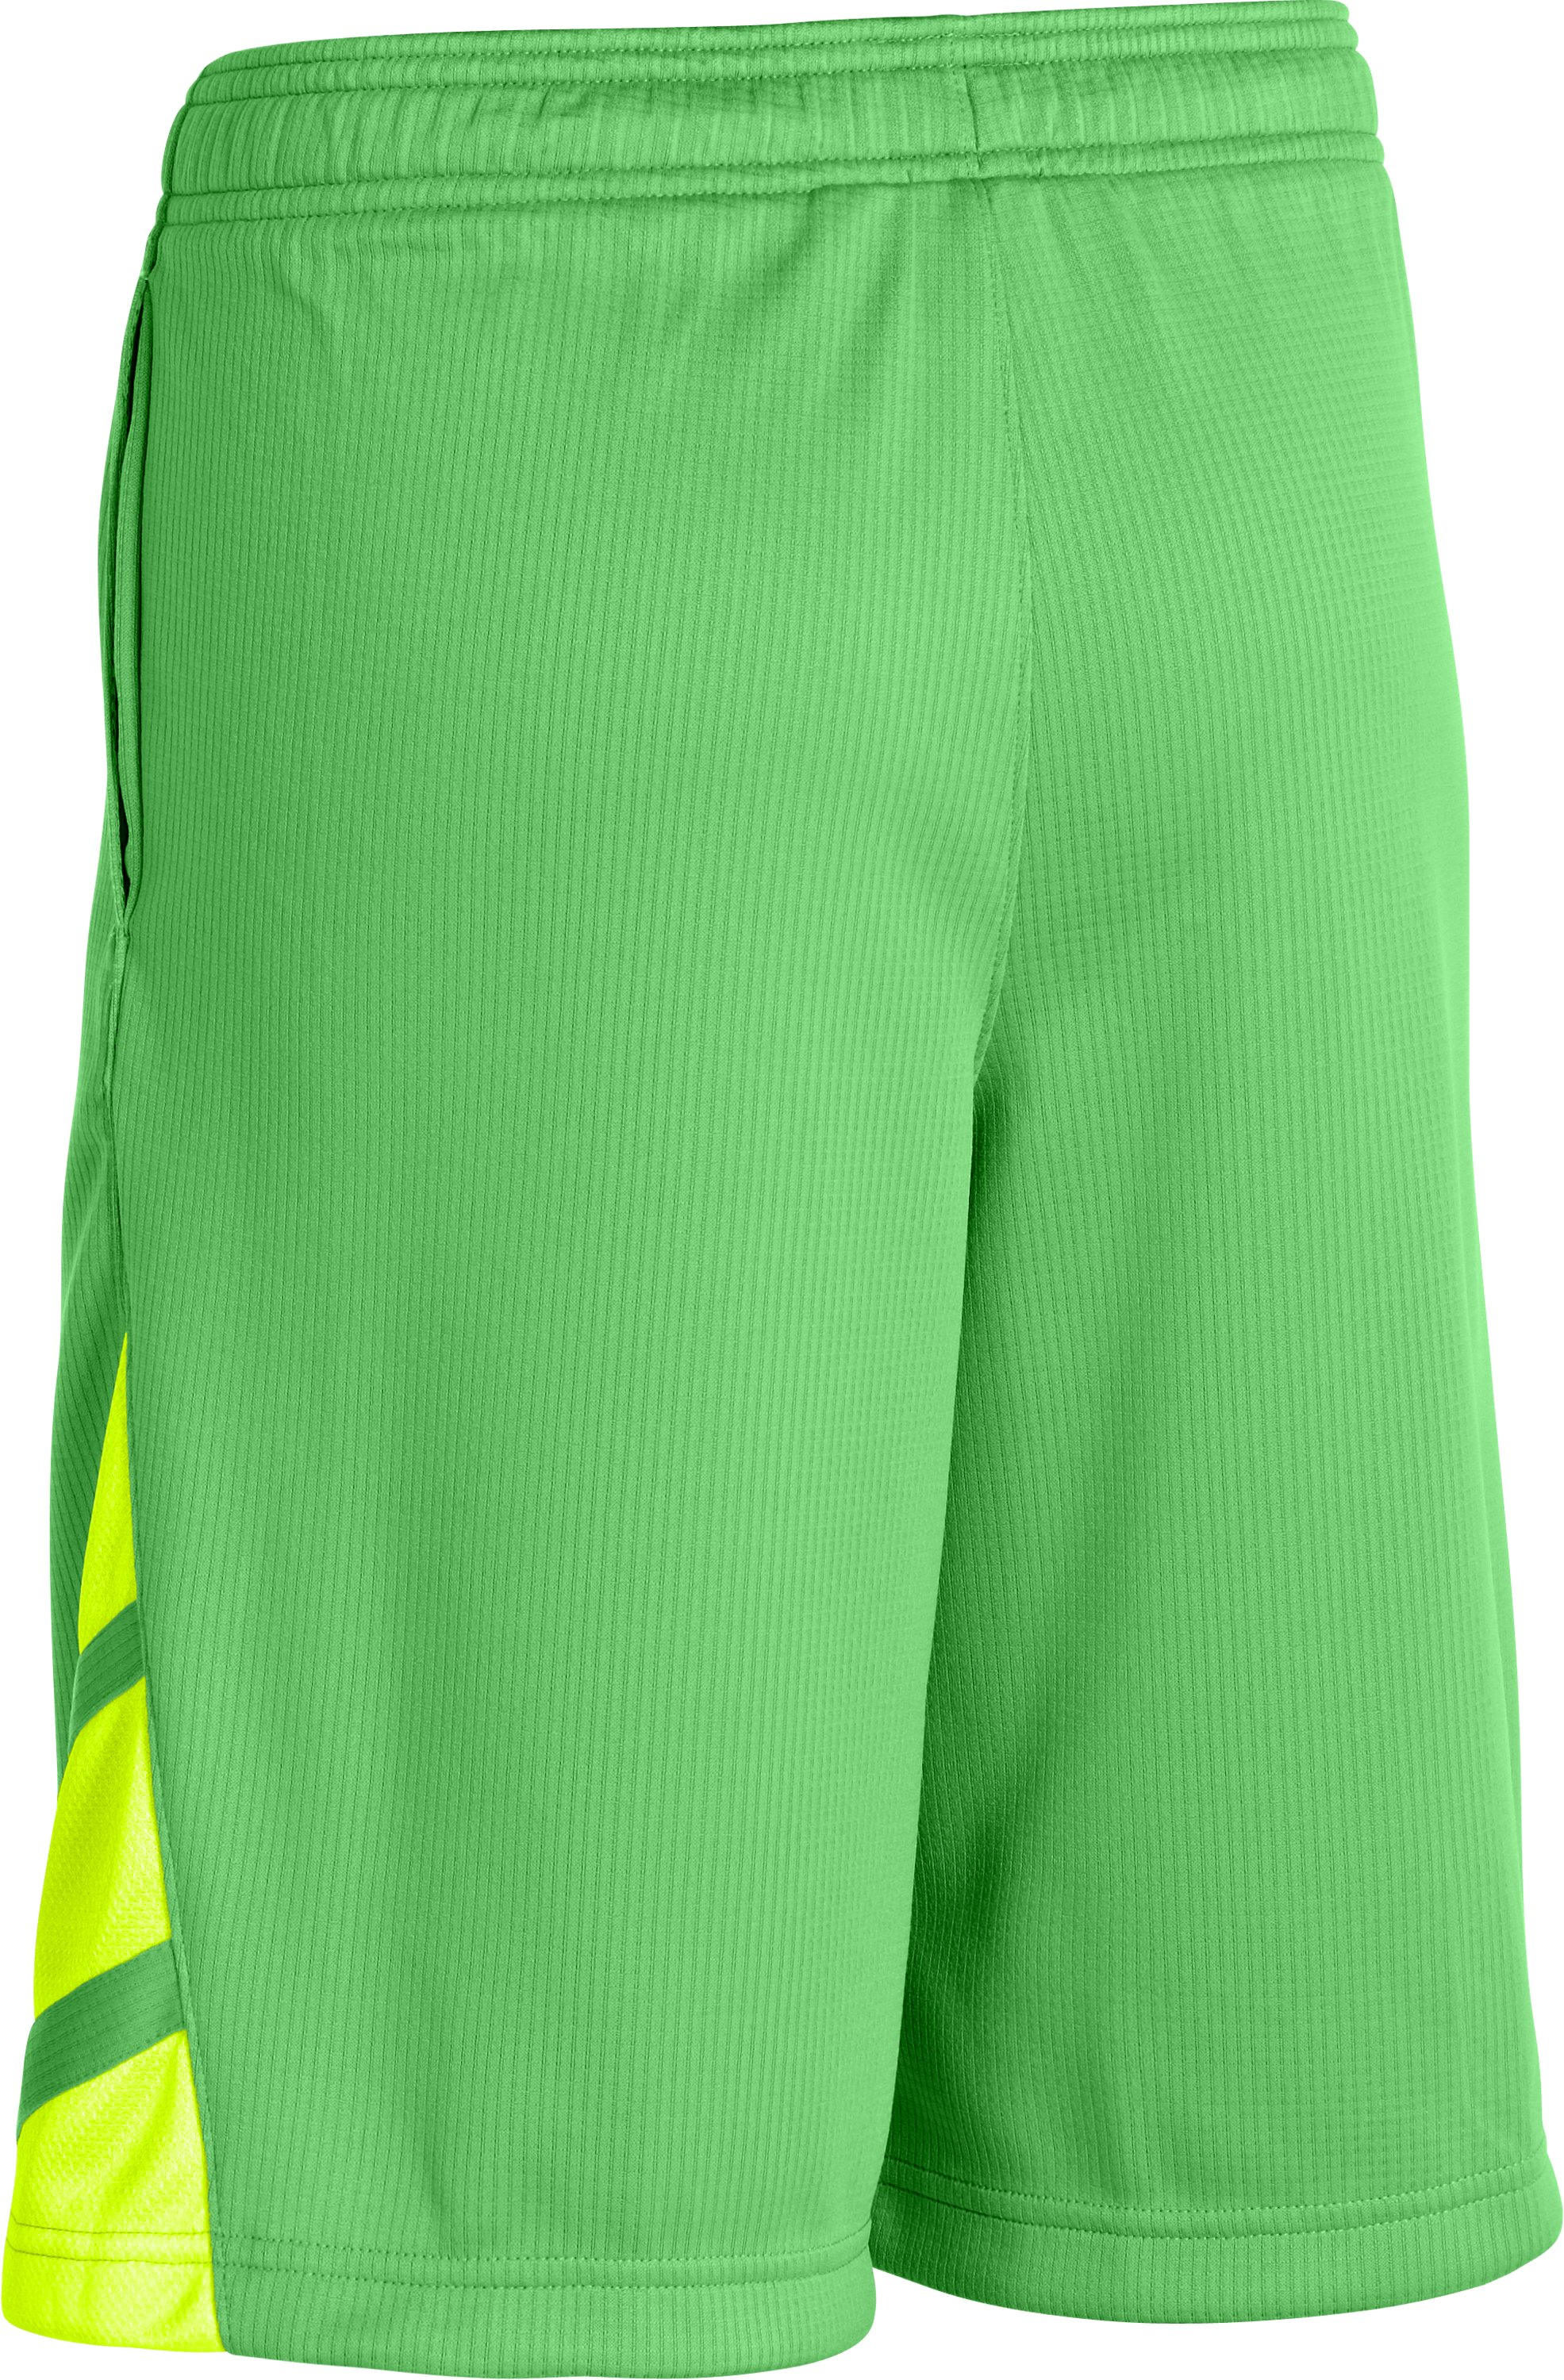 Boys' UA Big Timin Shorts, Lizard